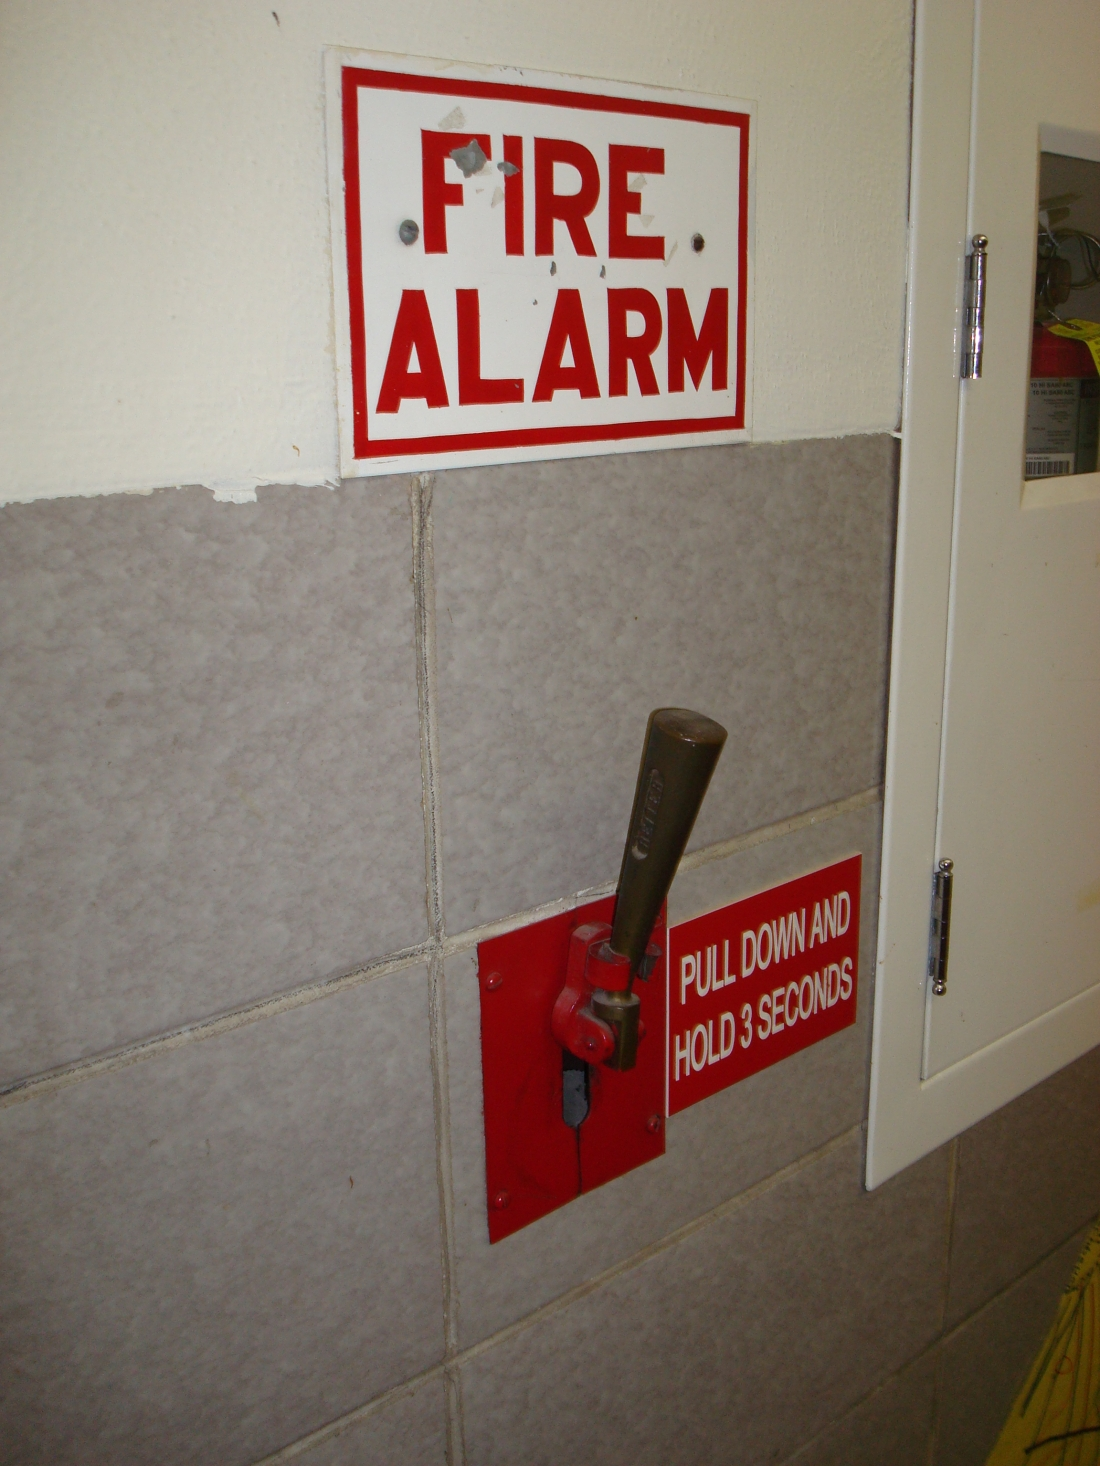 Reiter Company Pull Rod Fire Alarm. The pull rod is concealed within the wall and controlled by the brass pull handle.